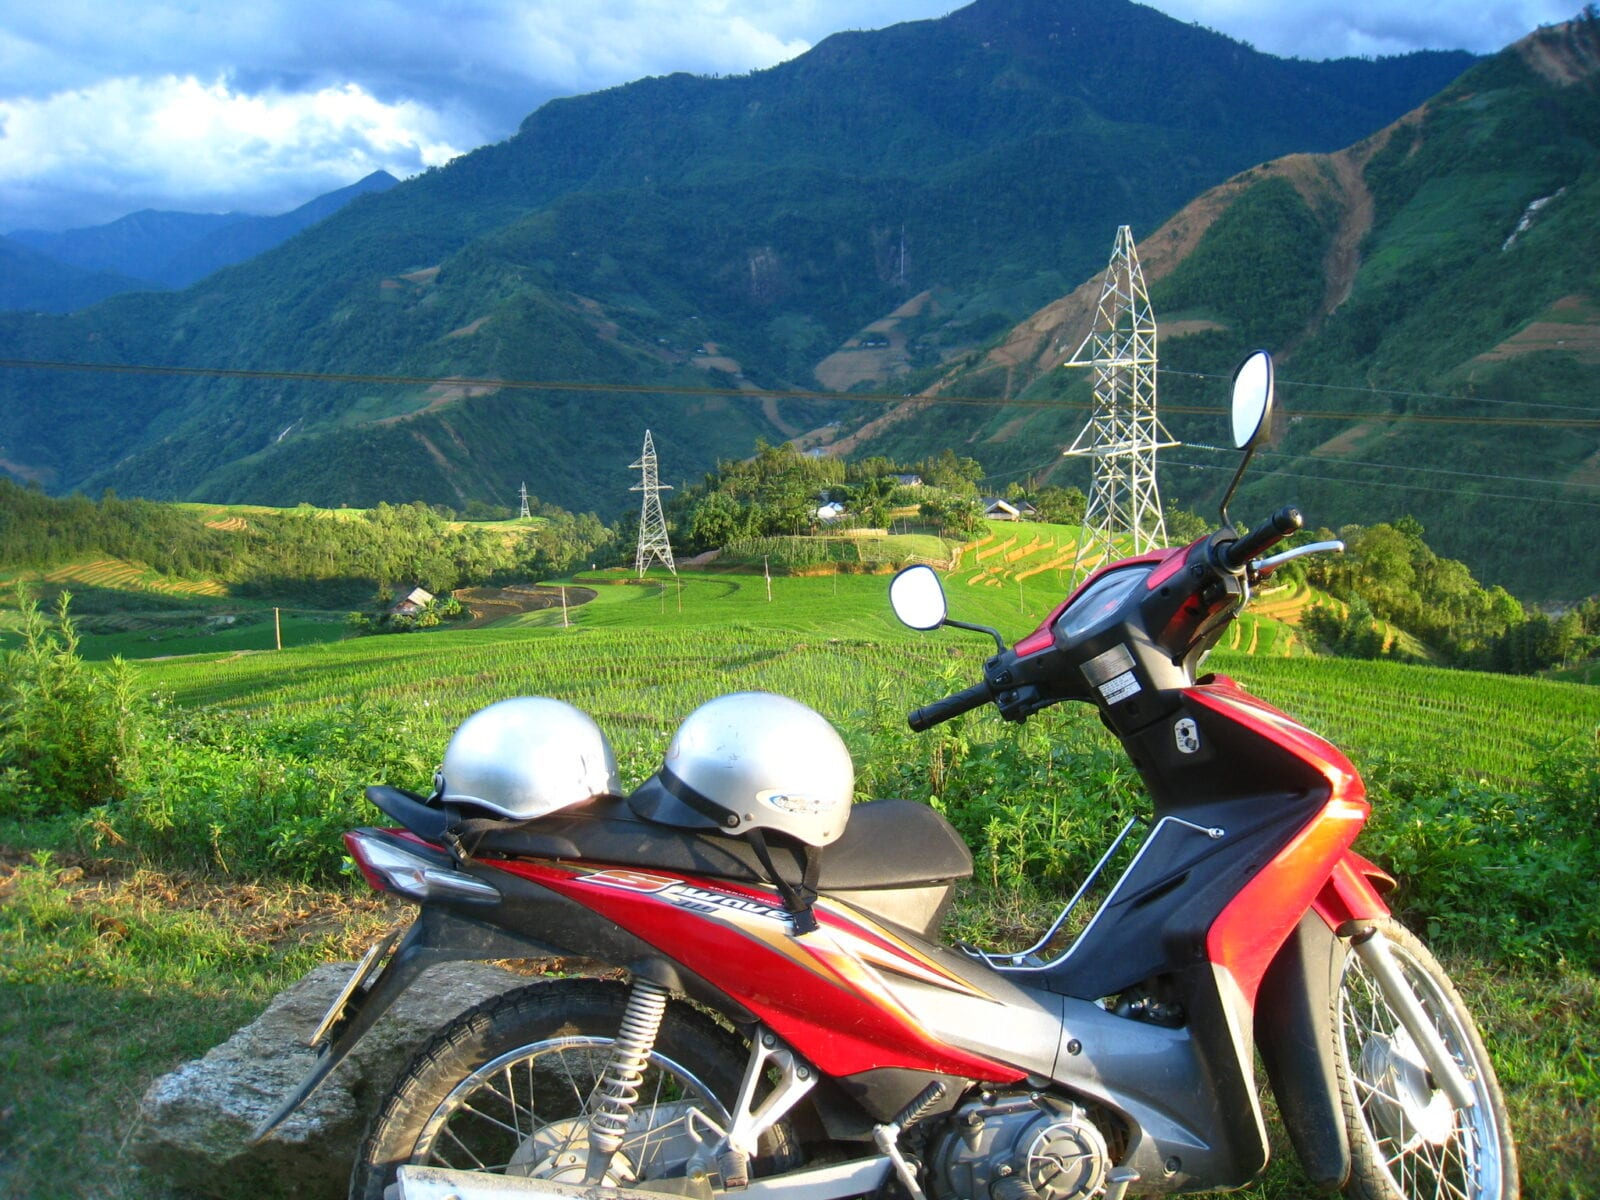 Image of a motorbike in the countryside of Vietnam